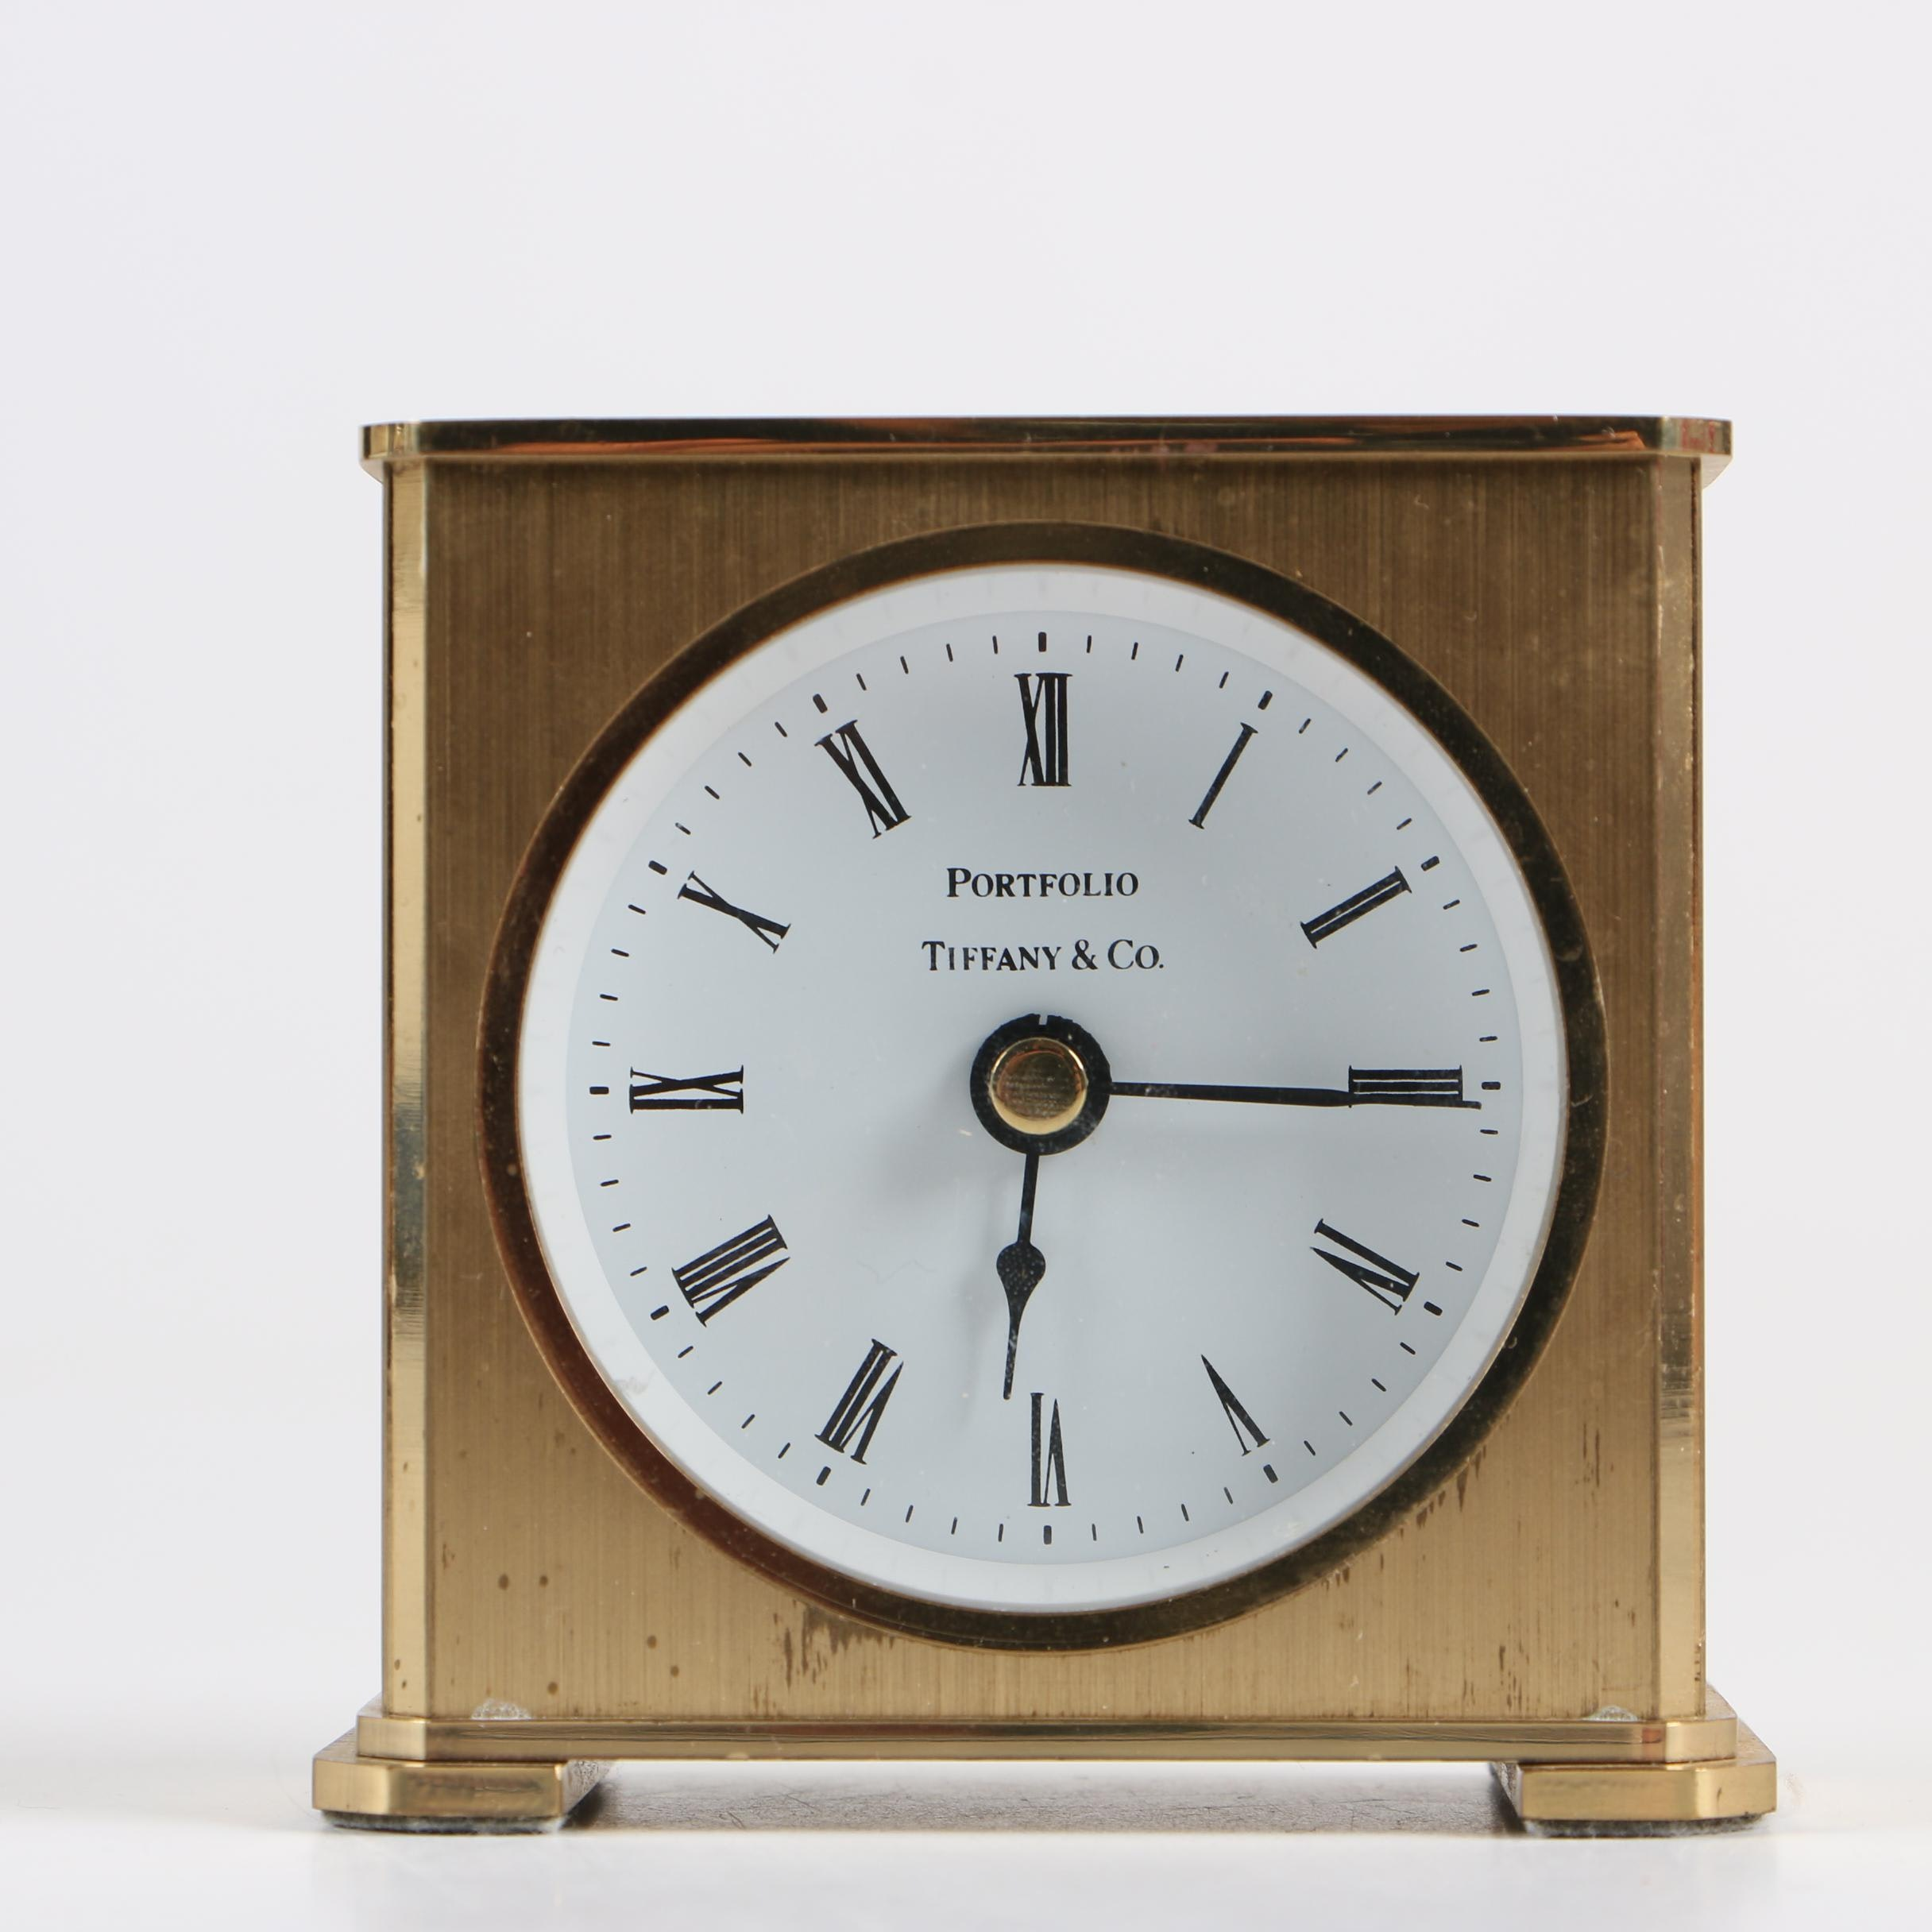 "Tiffany & Co. ""Portfolio"" Brass Desk Clock"